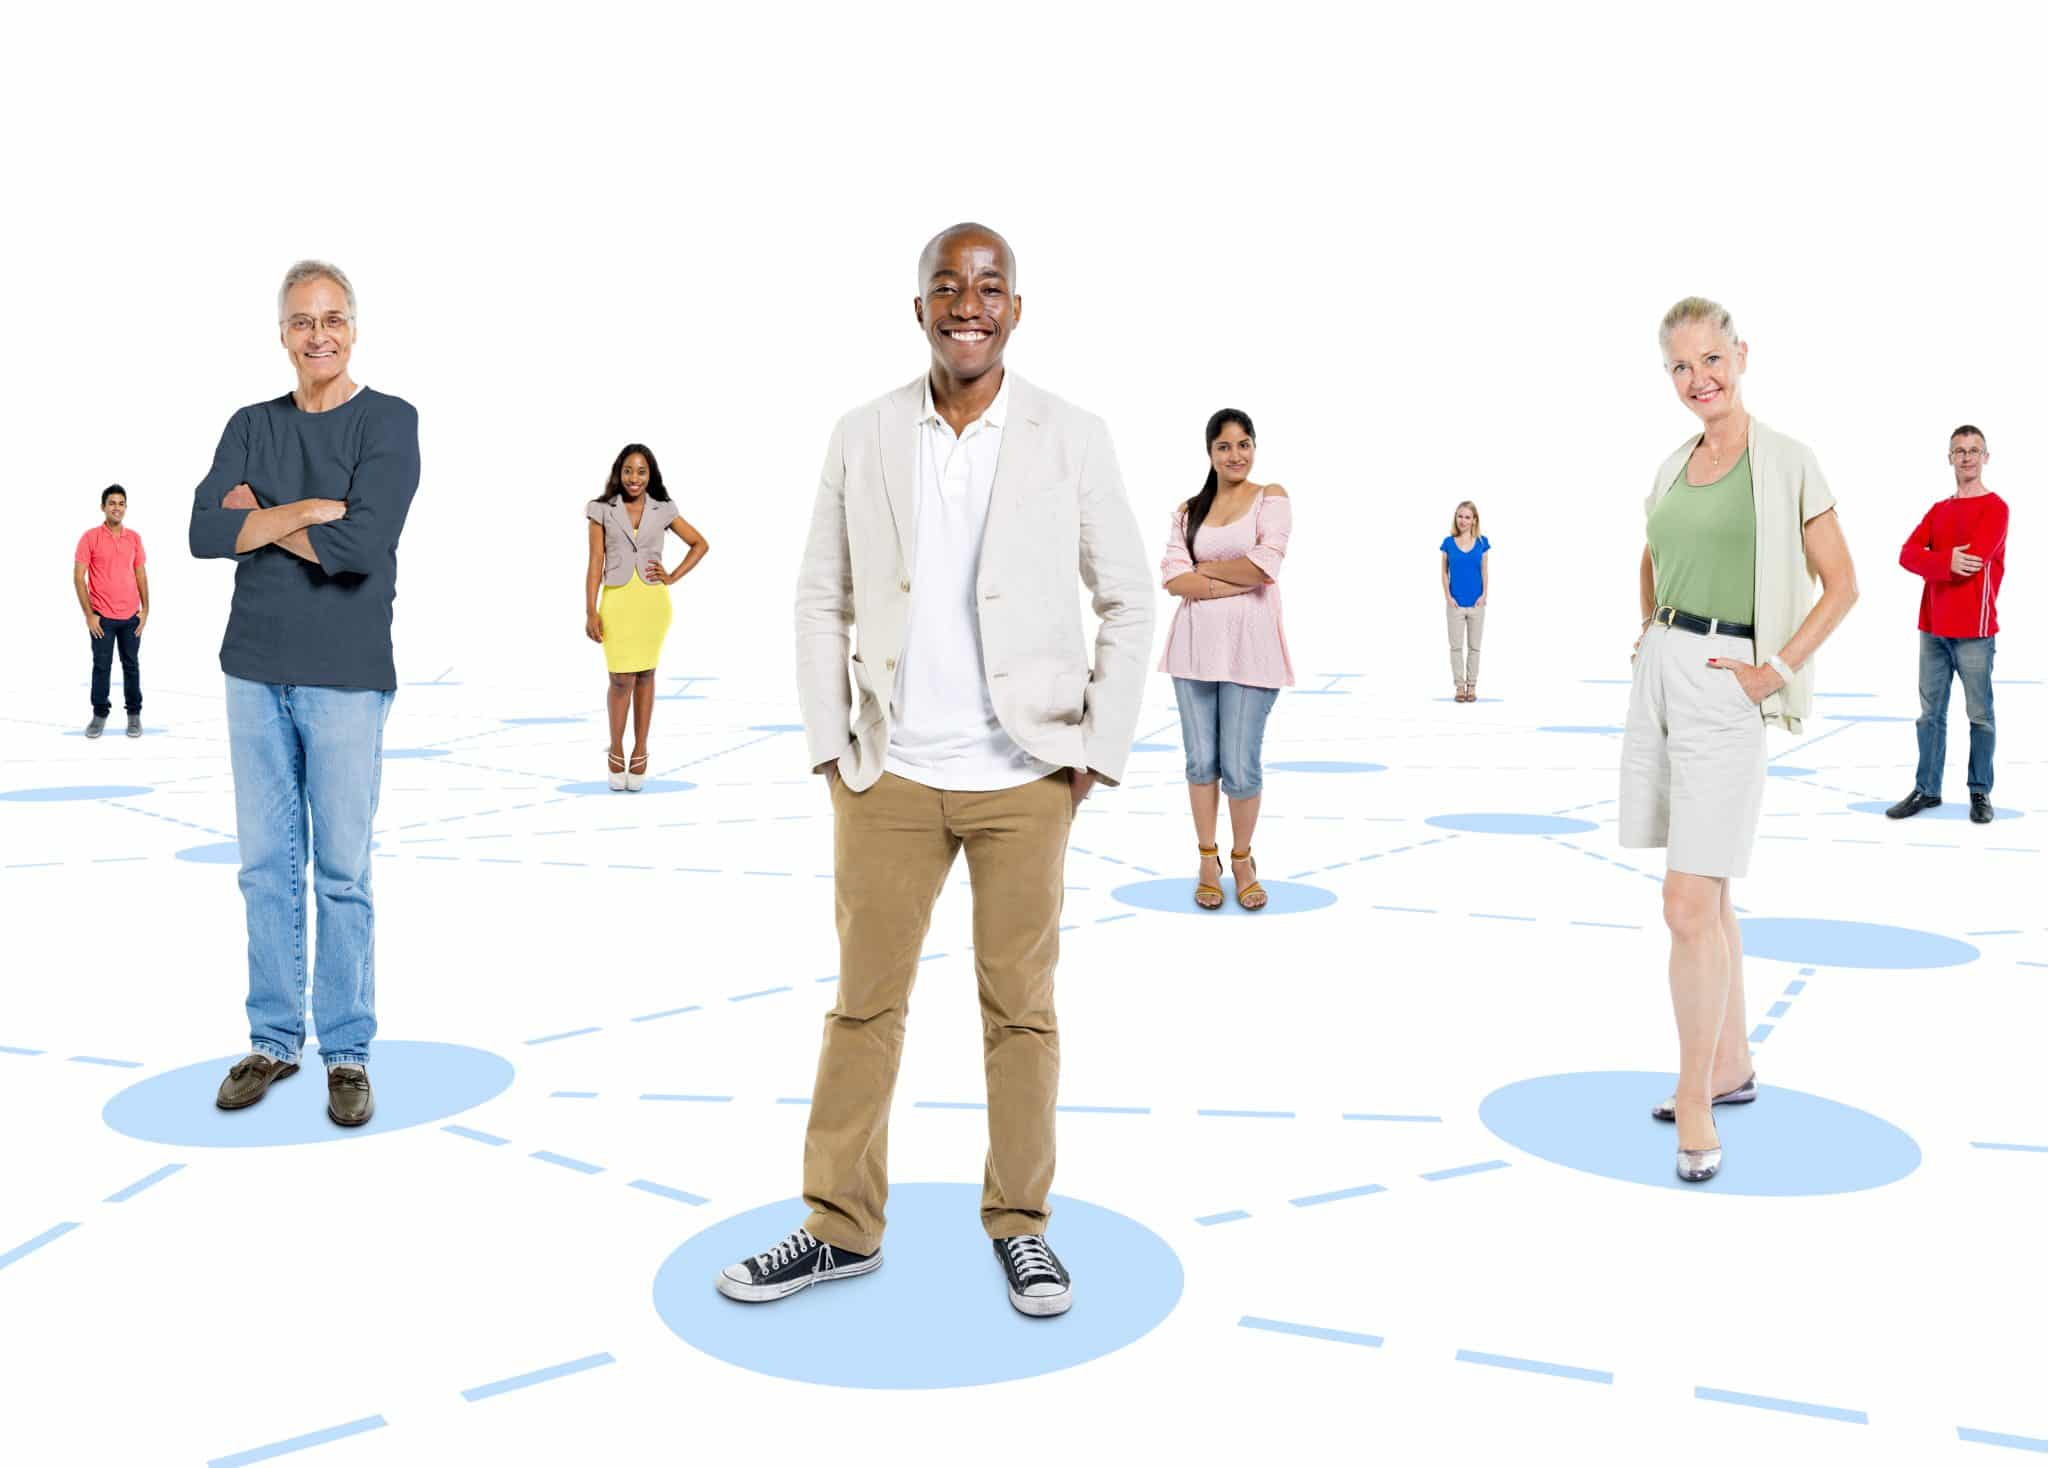 people of diverse ages and backgrounds each standing on a blue circle, with dotted lines connecting them